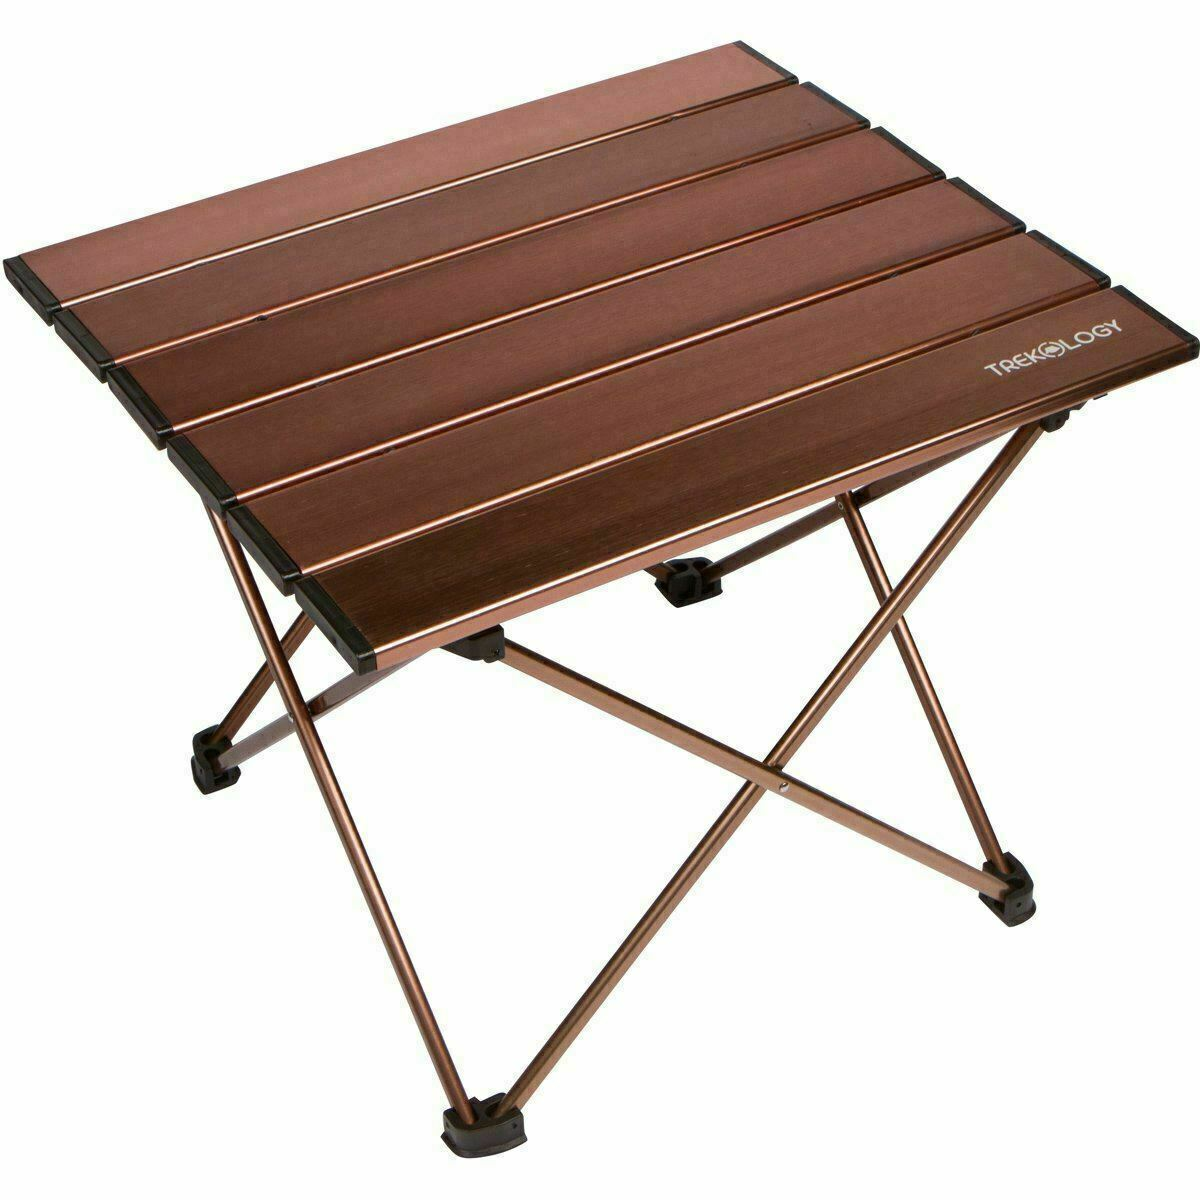 Trekology Portable Camp Backpacking Beach Table in a Bag with Aluminum...